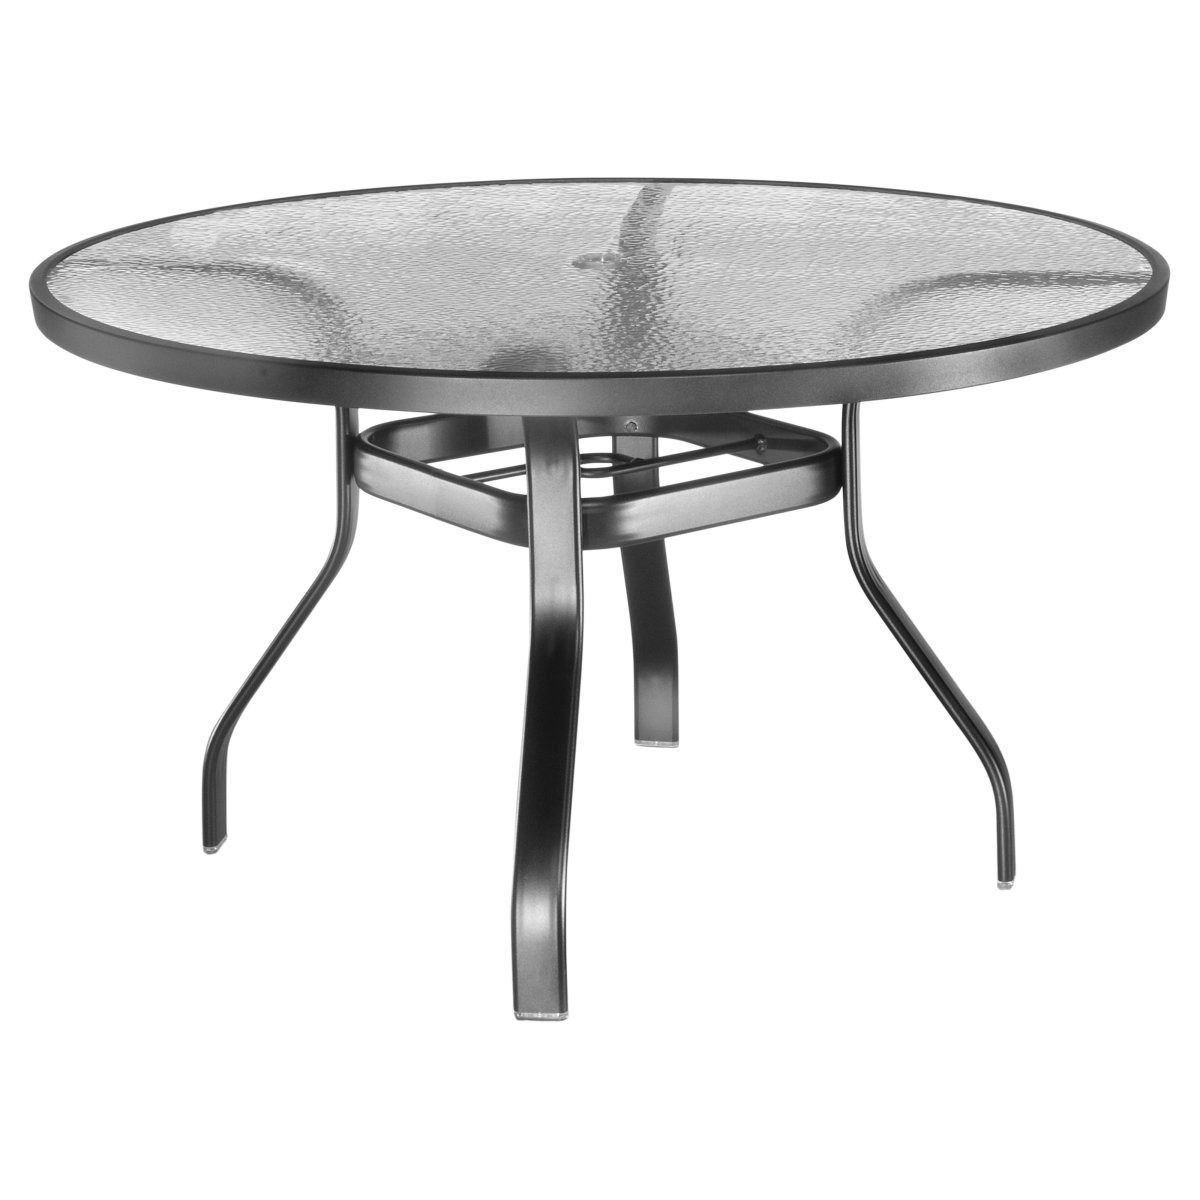 Beau 100+ 48 Inch Round Glass Patio Table   Best Spray Paint For Wood Furniture  Check